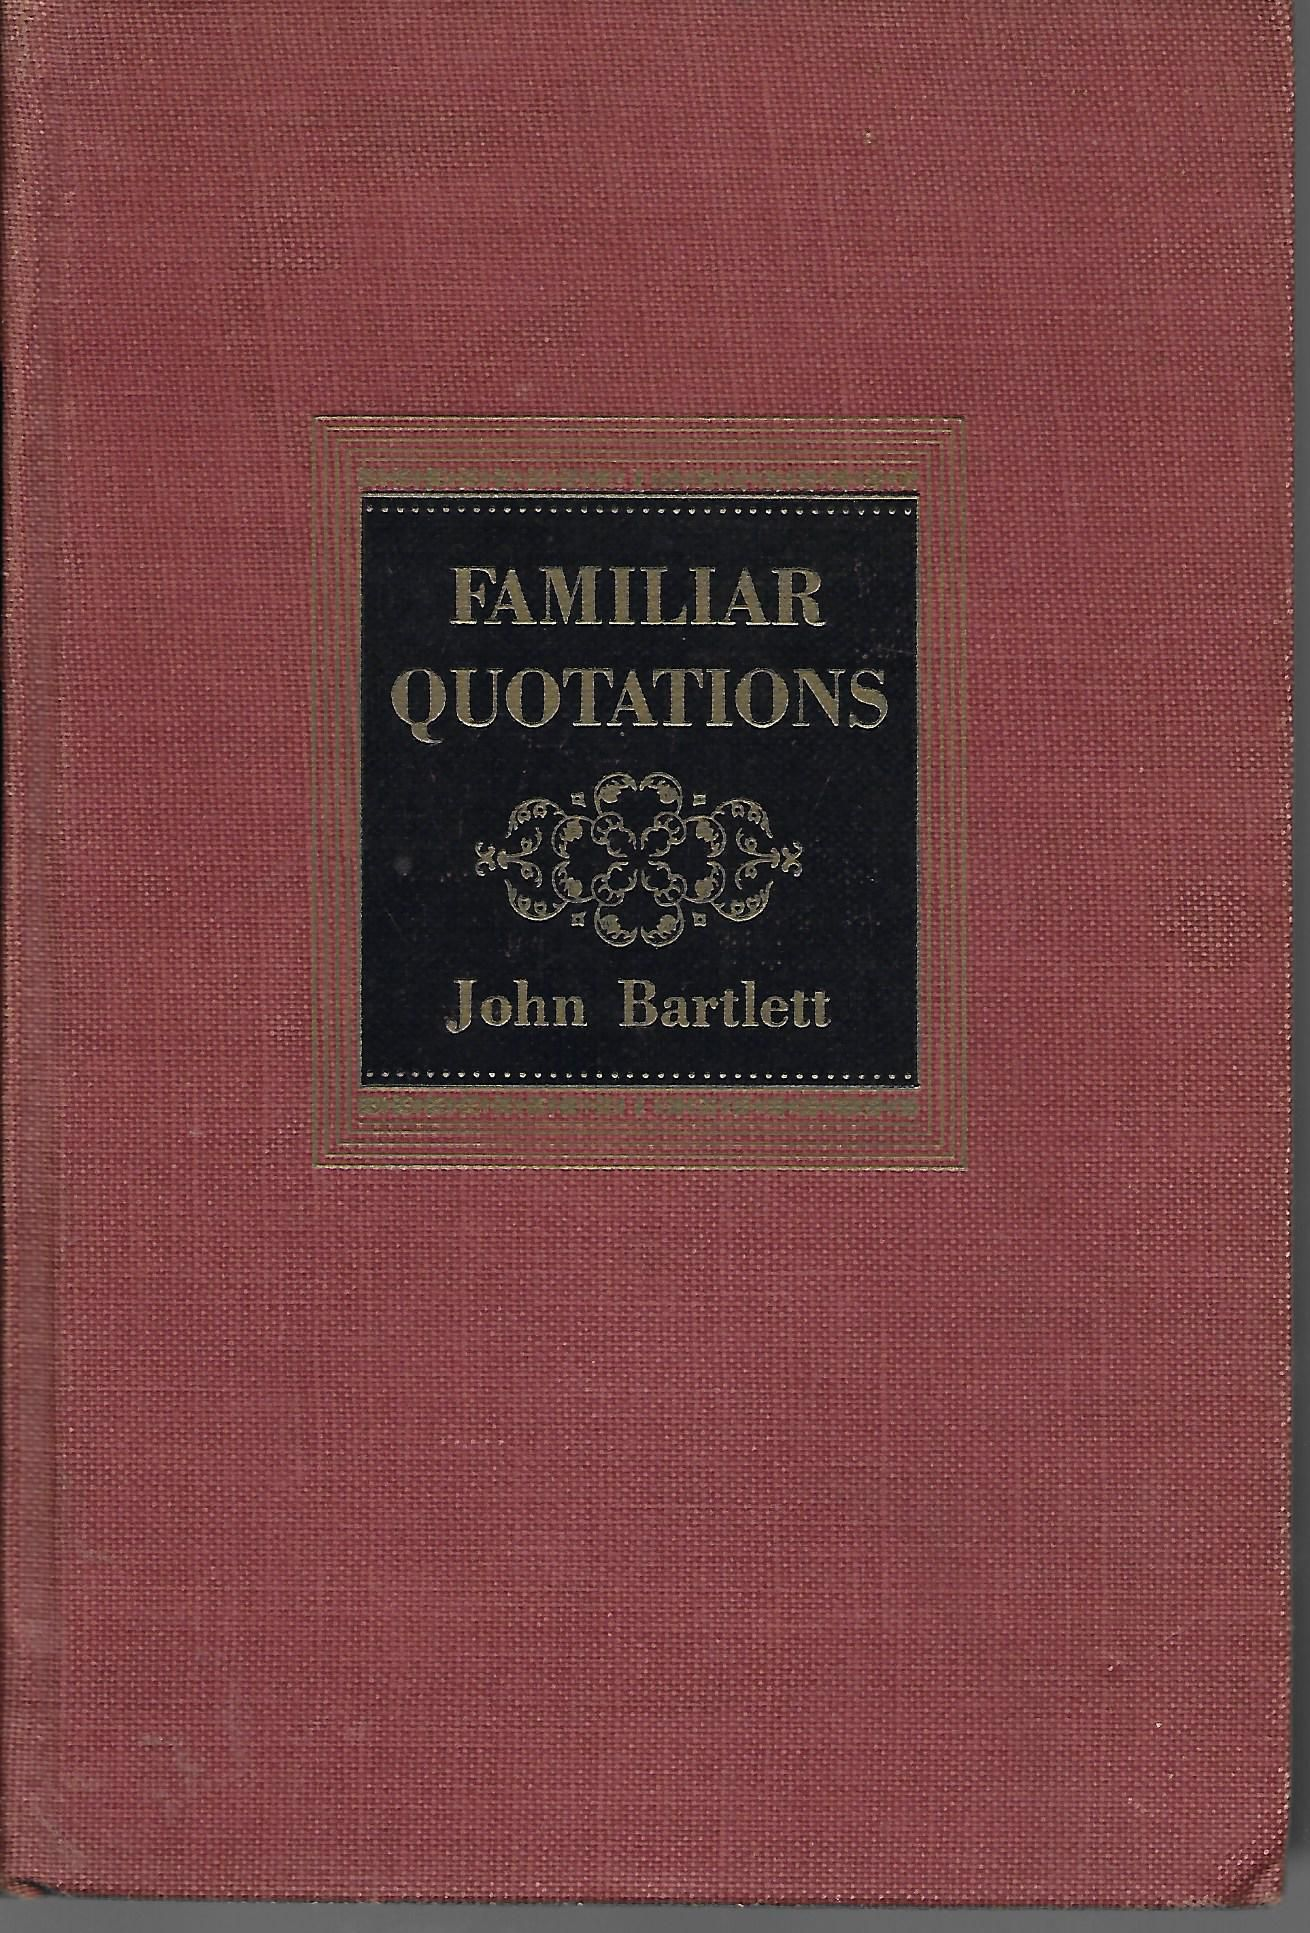 bartletts familiar quotations a collection of passages phrases and proverbs traced to their sources in ancient and modern literature